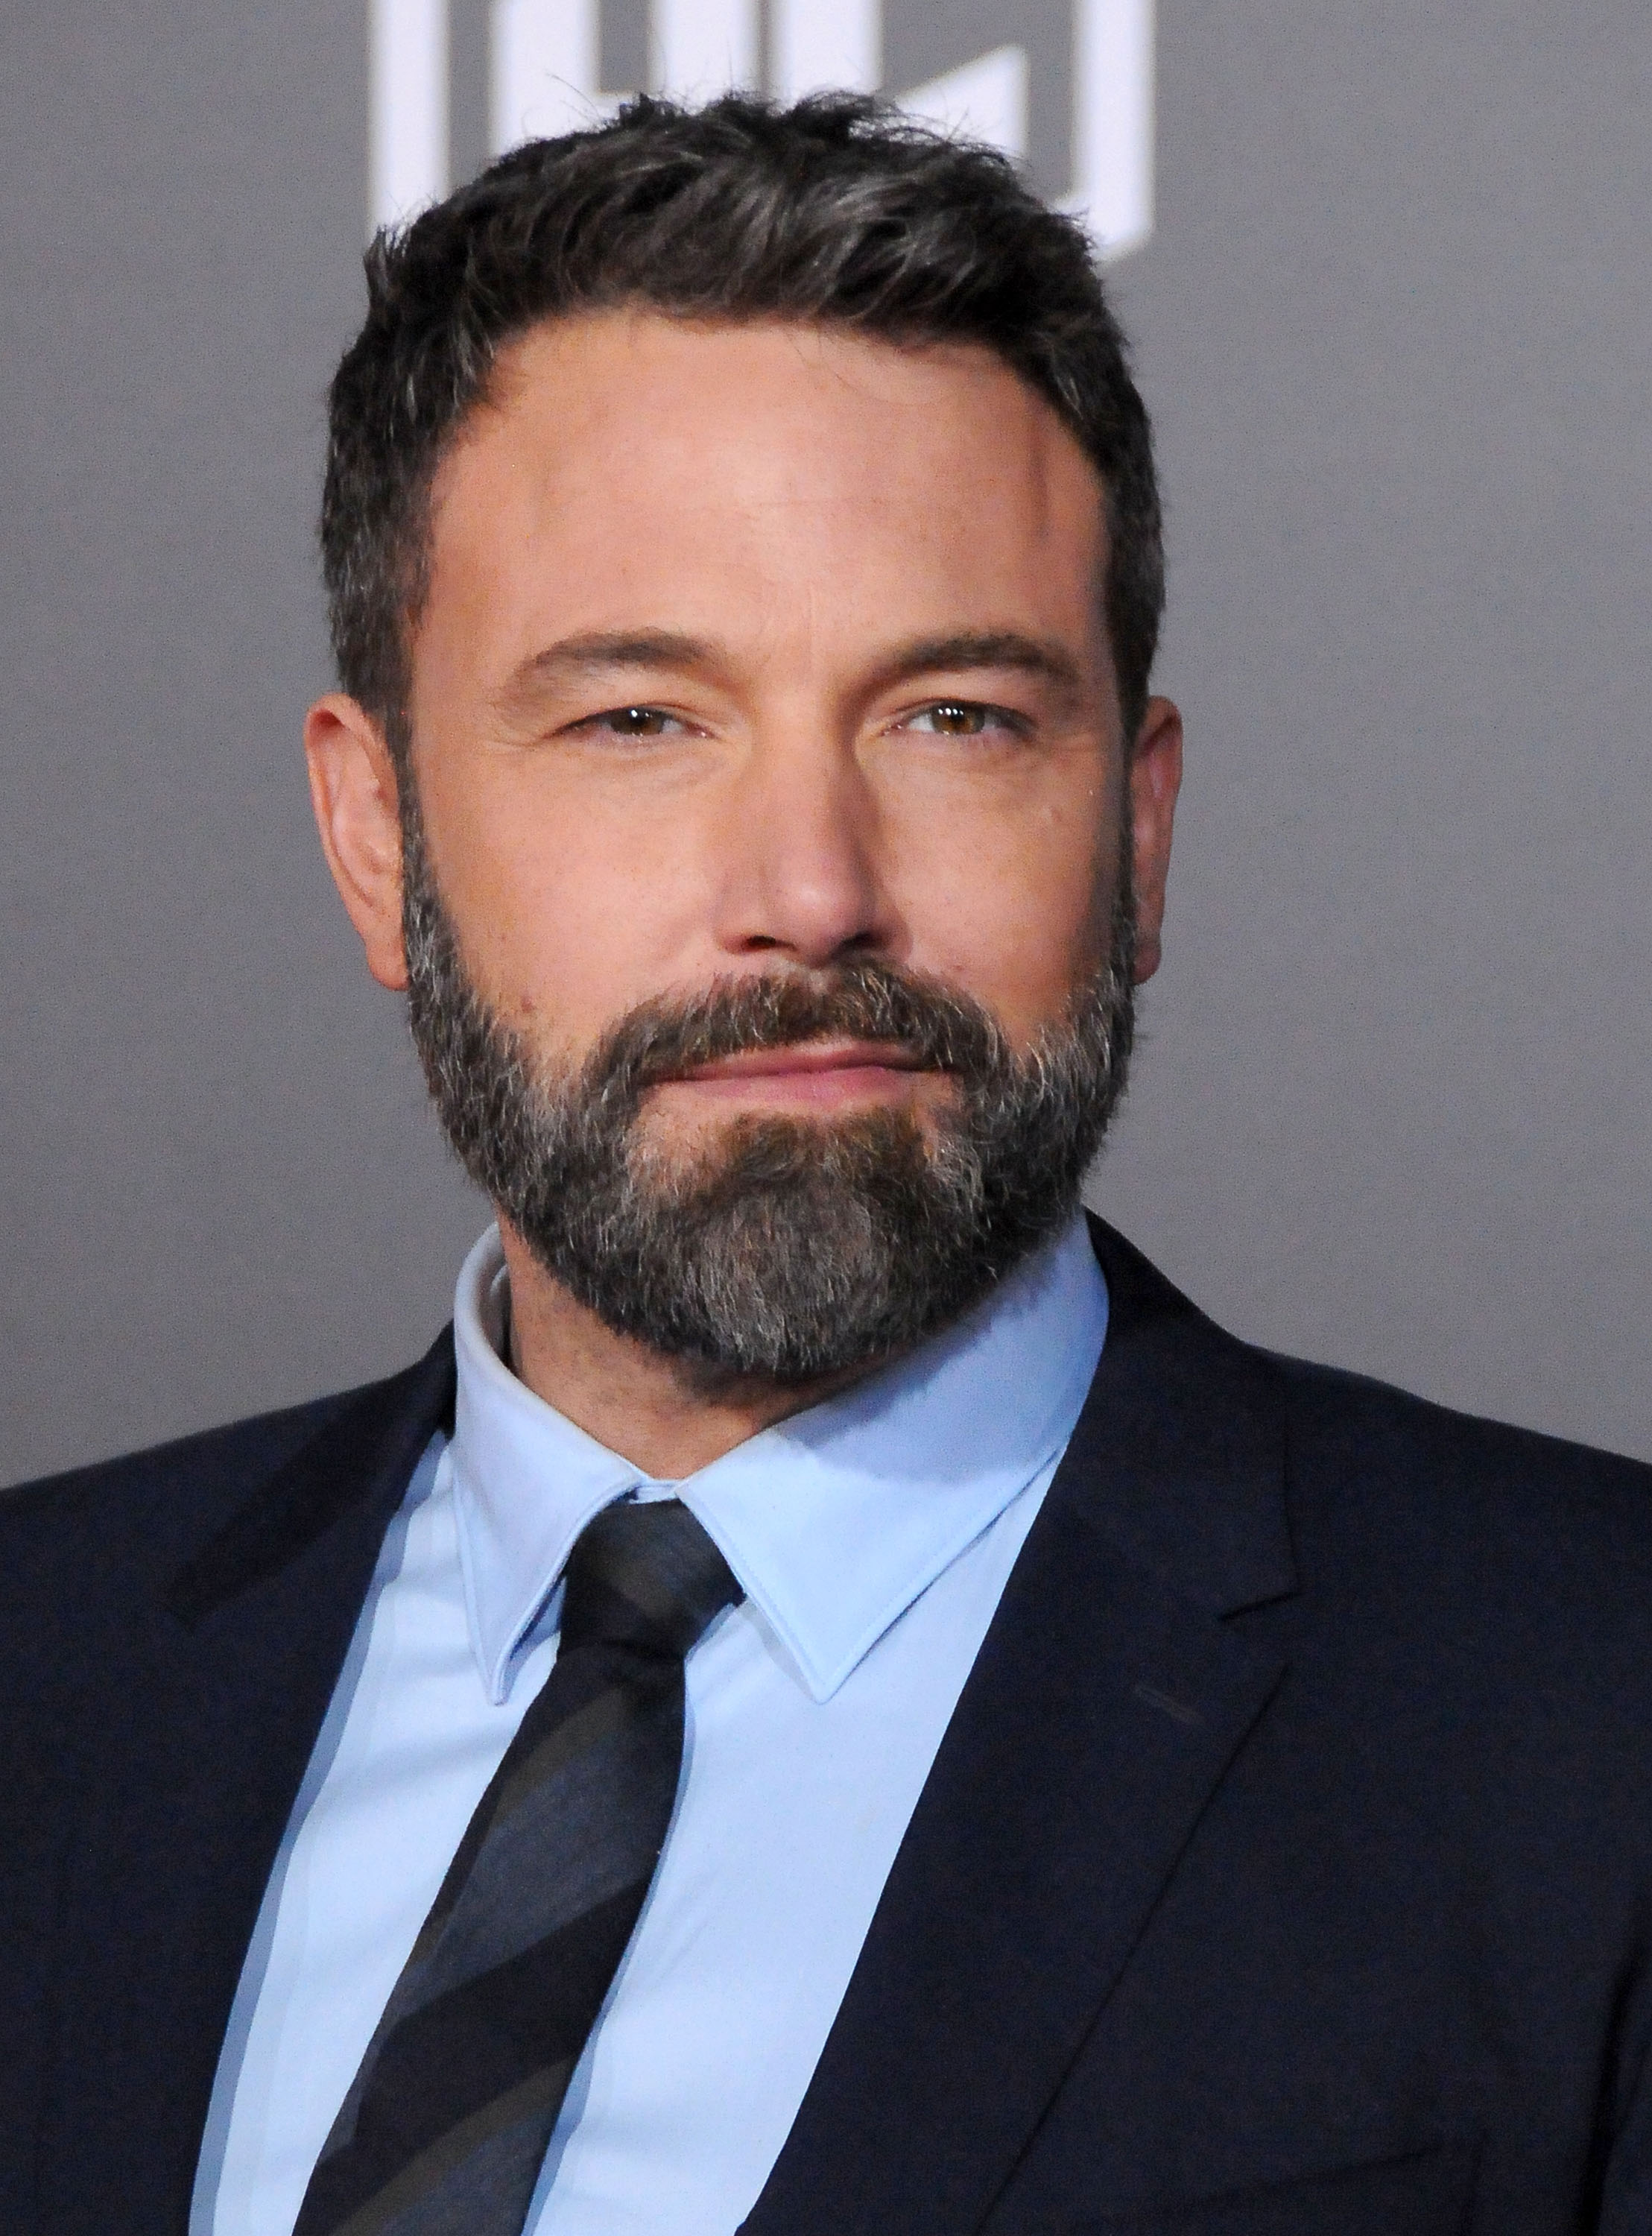 Ben Affleck attends the premiere of Warner Bros. Pictures' 'Justice League' on November 13, 2017 in Hollywood, California. | Source: Getty Images.